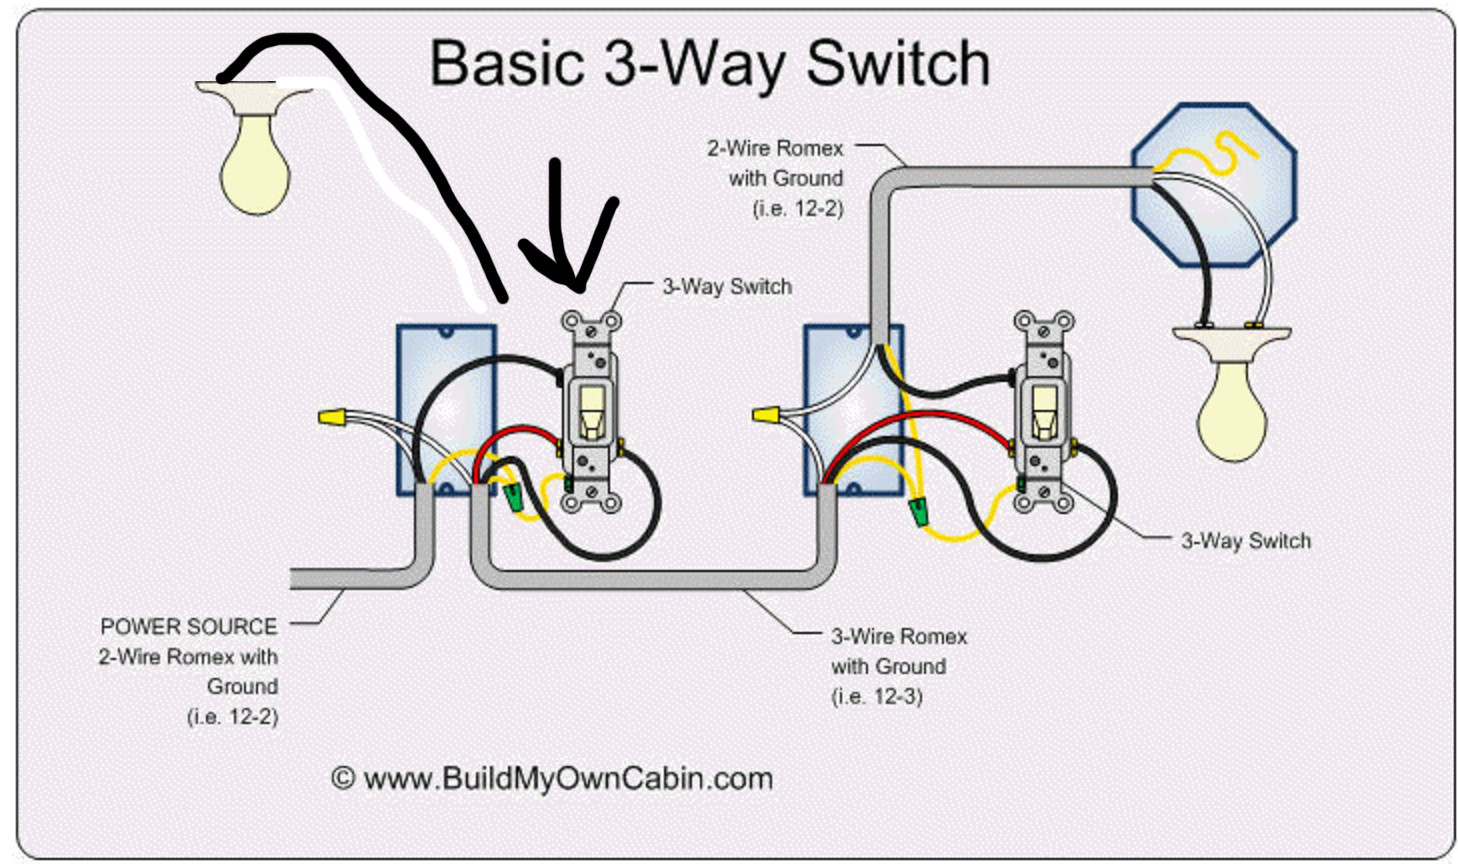 single gang two way light switch wiring diagram 2000 honda civic si radio lighting additional to a 3